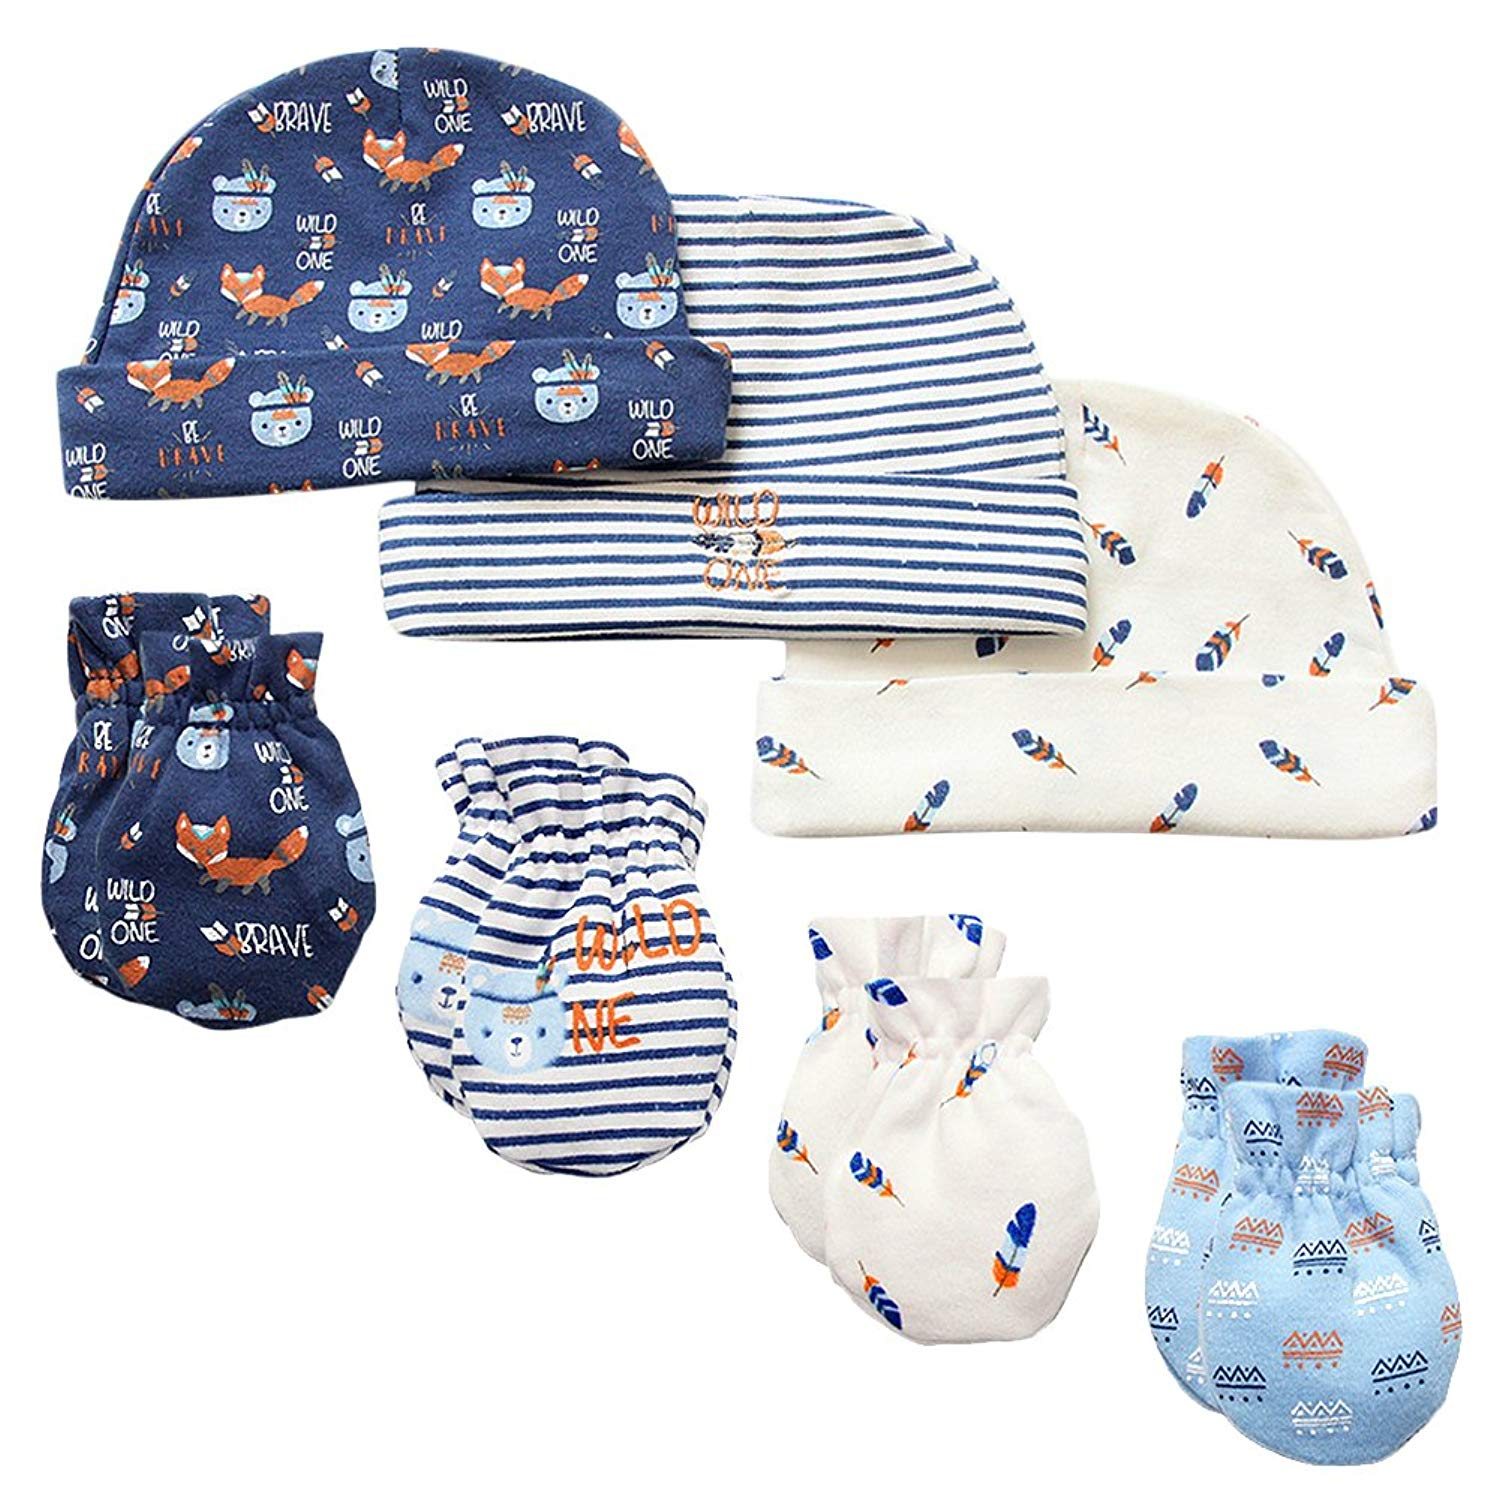 f3d0a89fa9b Get Quotations · 7 Piece Scratch Mittens and Caps Set Infant Newborn Gift  Set For Baby Boys   Girls